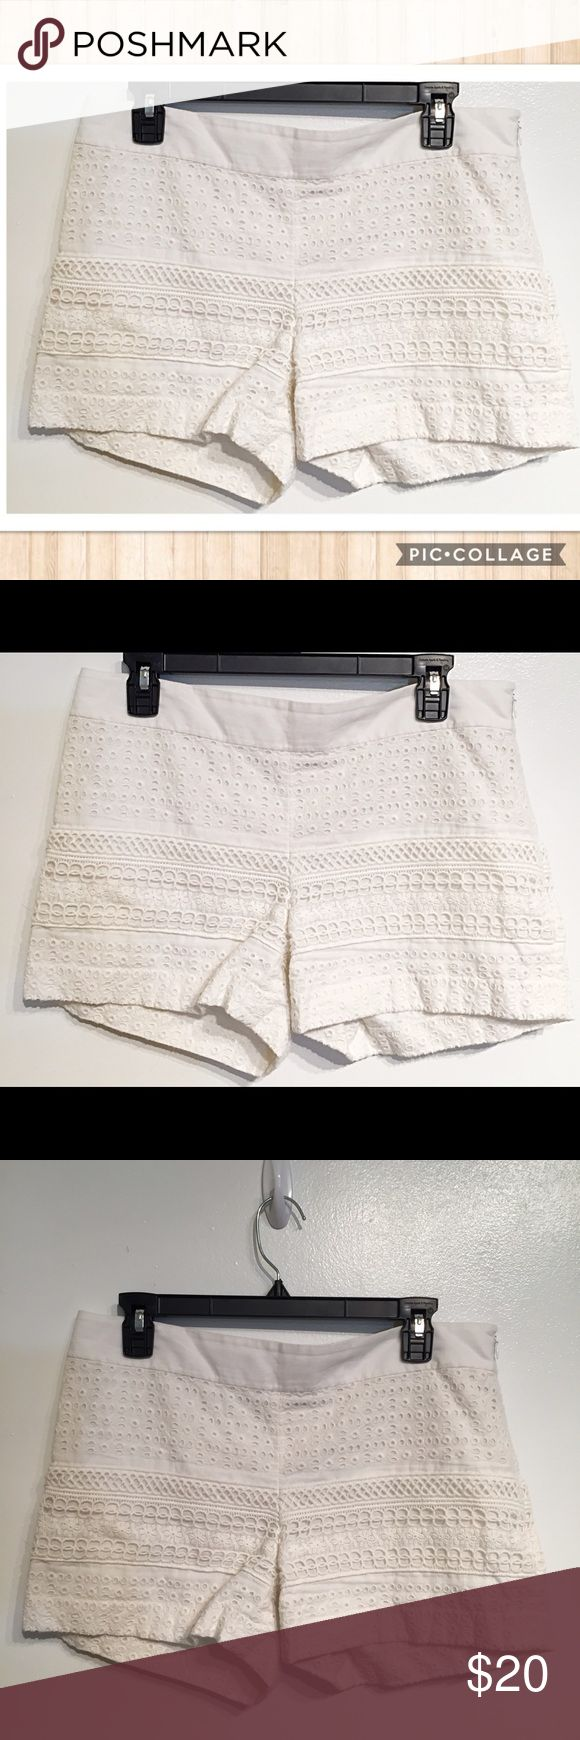 """Ann Taylor LOFT """"The Riviera"""" White Eyelet Shorts Ann Taylor LOFT """"the riviera"""" White Eyelet shorts. Zip up the side. Size 6. Measures 17"""" flat at waist and just under 4"""" inseam. No modeling. Smoke free home. I do discount bundles. LOFT Shorts"""